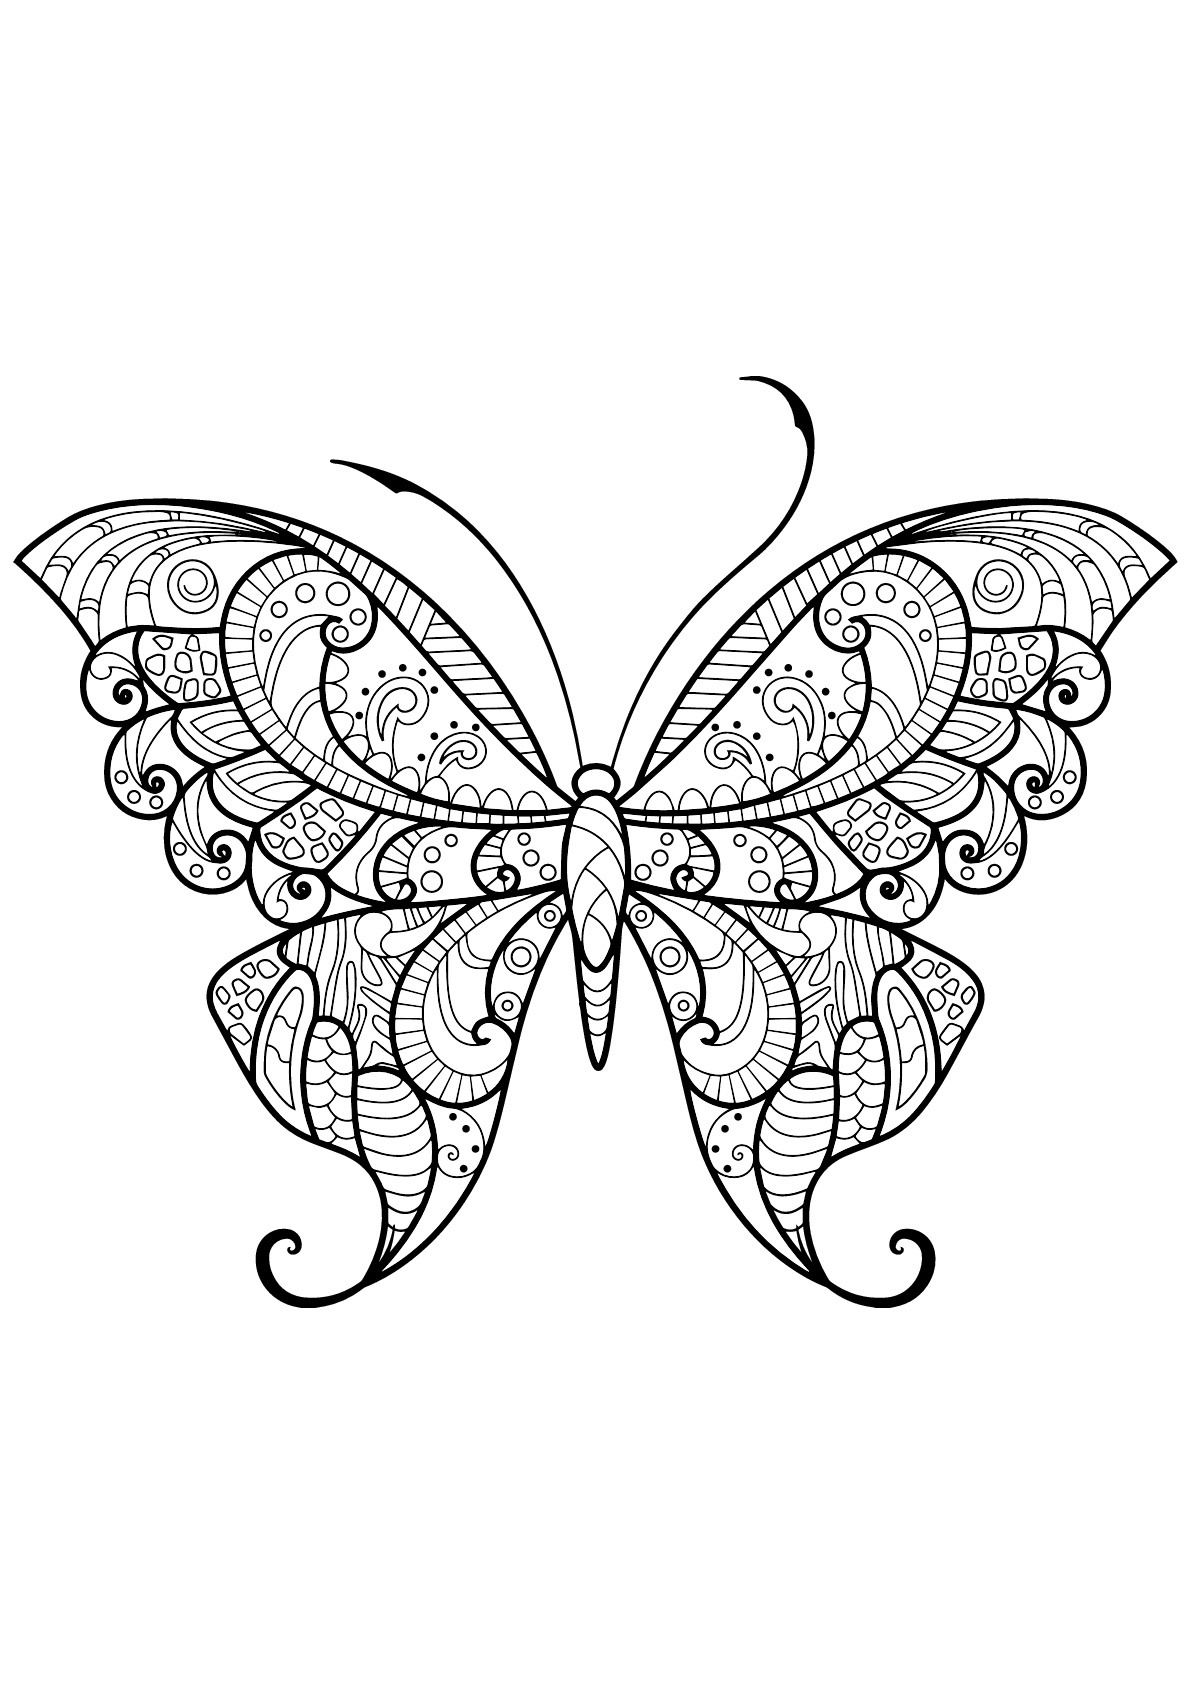 few and many coloring pages - photo#50